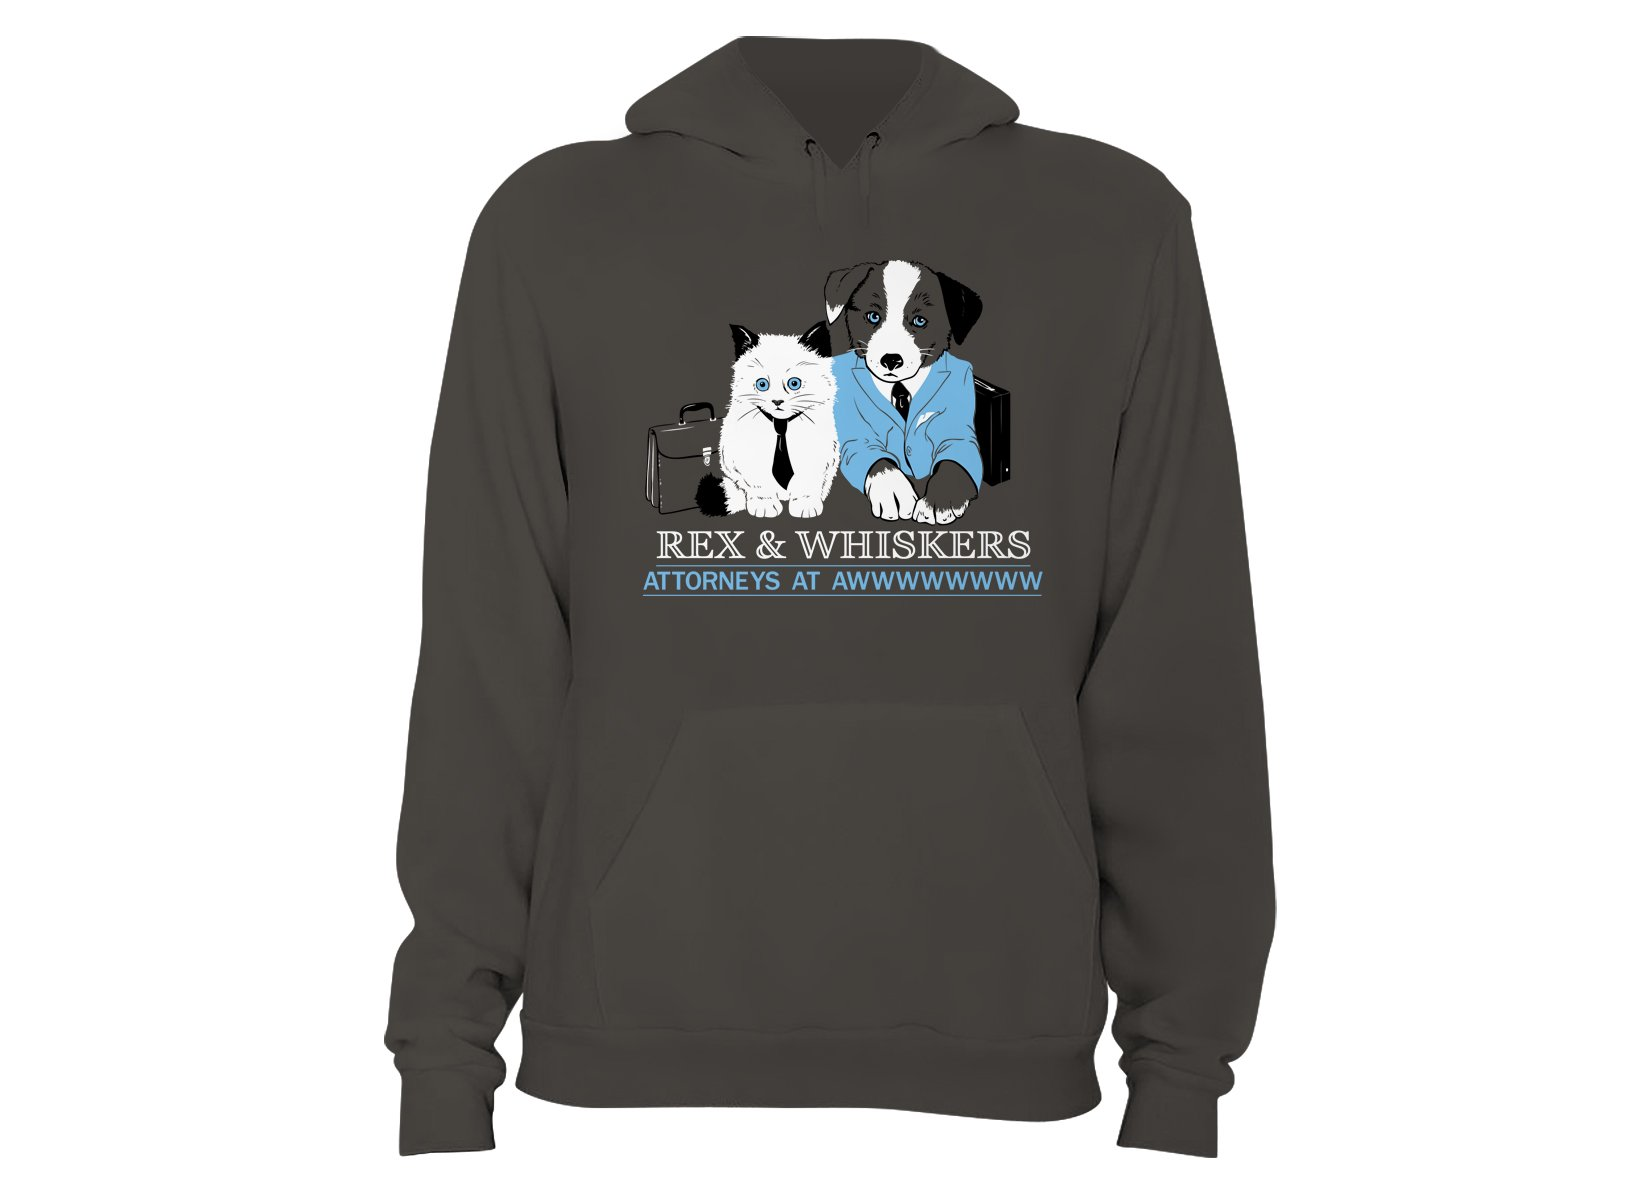 Rex and Whiskers Attorneys on Hoodie